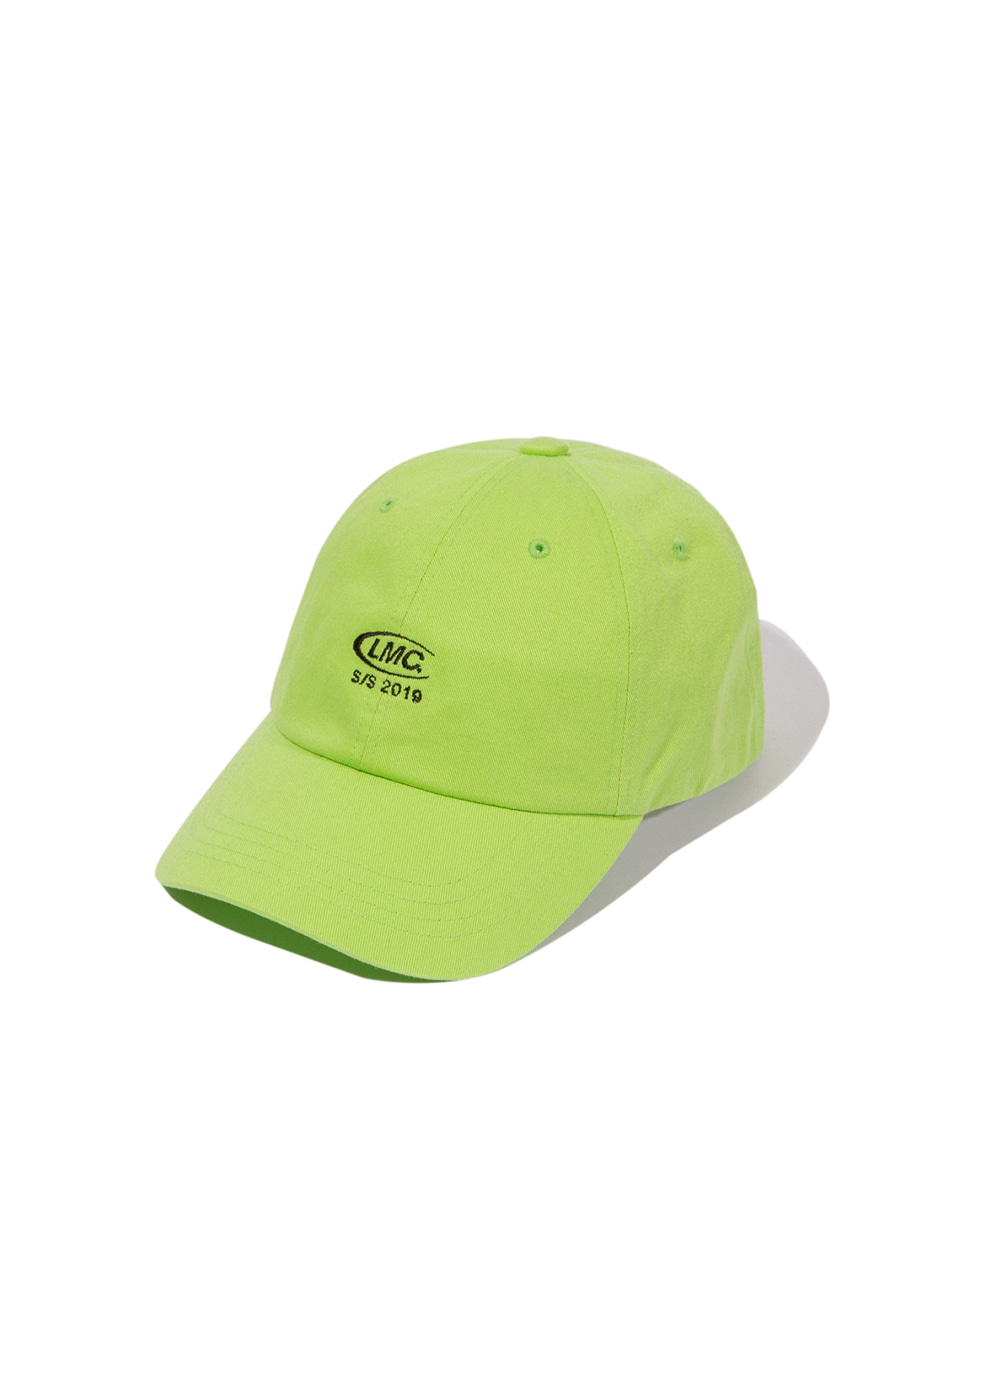 LMC CO LOGO 6 PANEL CAP lime